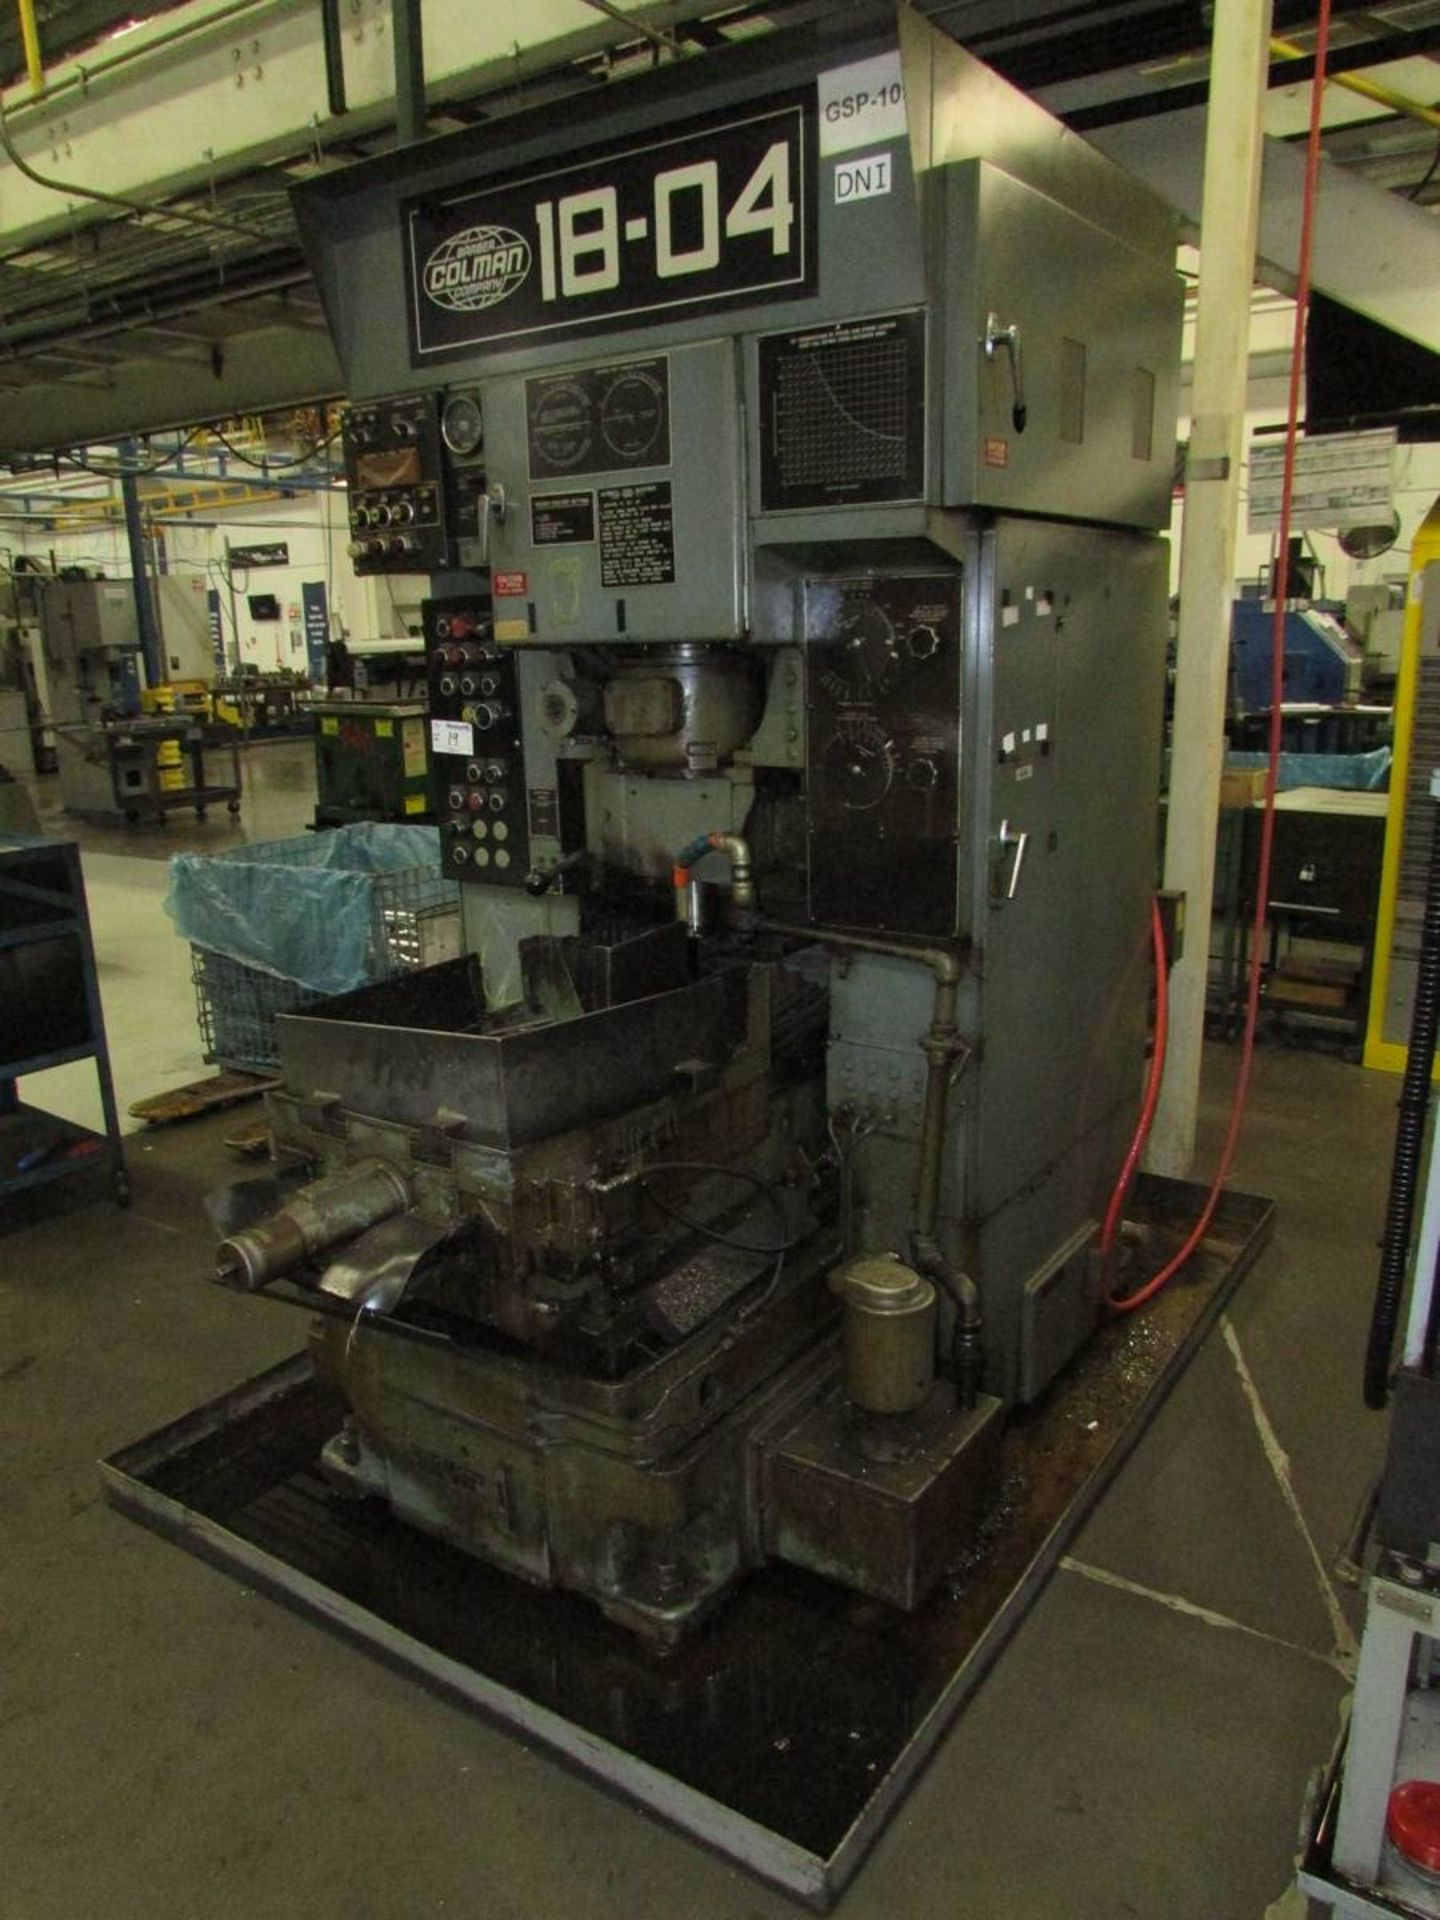 Barber Colman 18-04 Vertical Gear Shaping Machine - Image 11 of 19